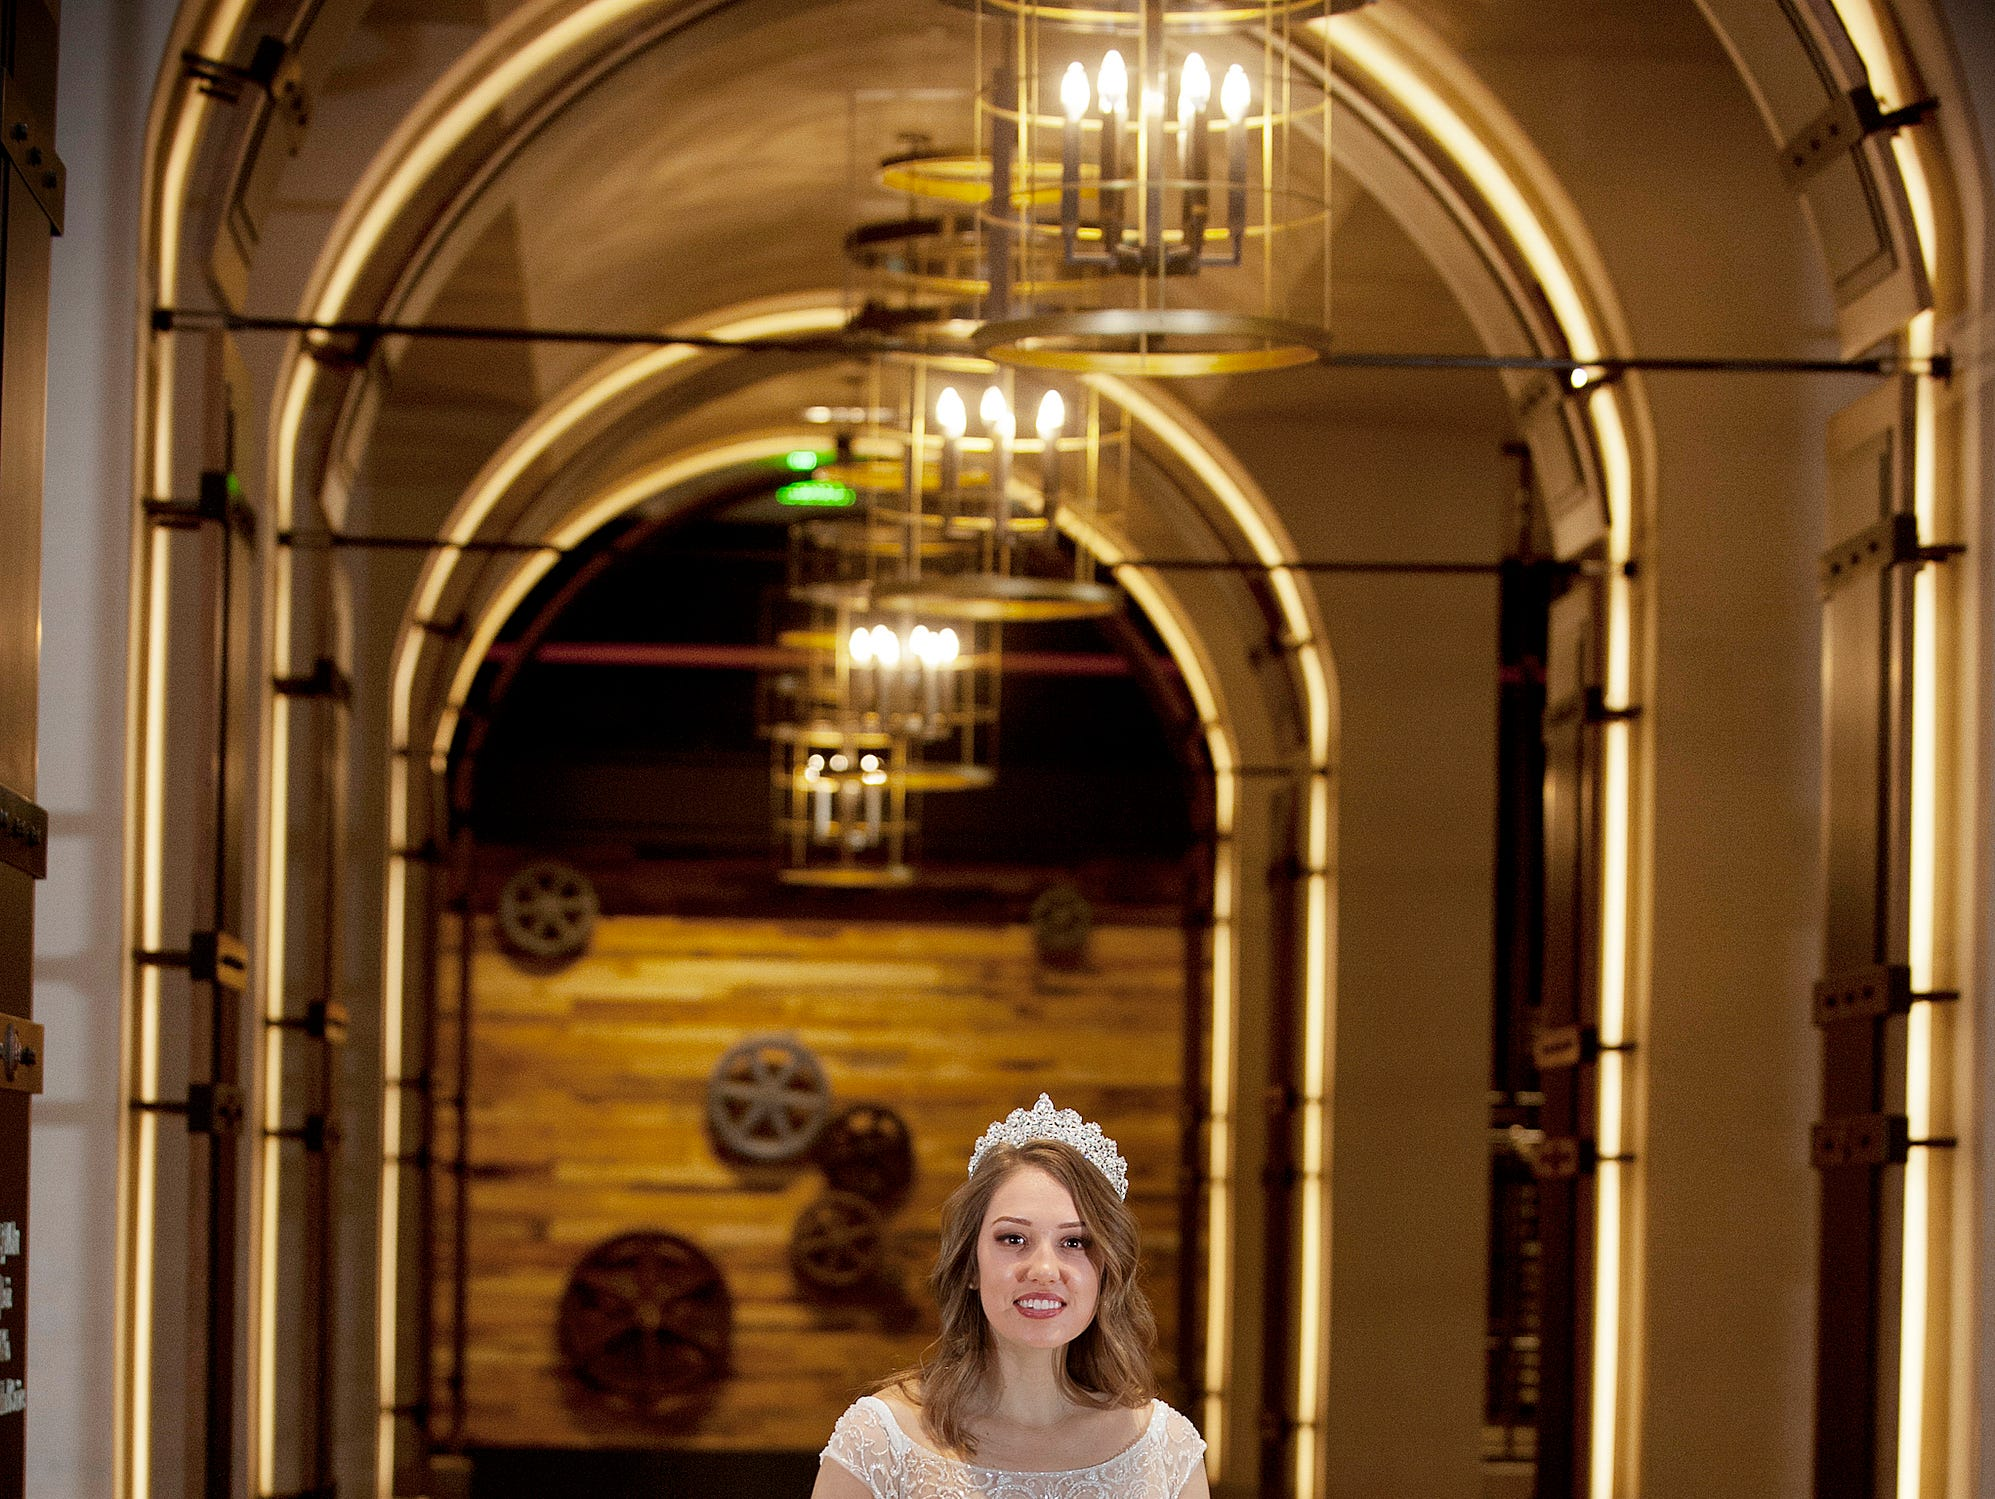 Kentucky Derby Festival Princess Elizabeth Seewer, 23, of the Springhurst neighborhood in Louisville, is in Bellarmine University's graduate physical therapy doctoral program. She posed for her photo in an archway of the Omni Louisville Hotel lobby. 06 January 2019